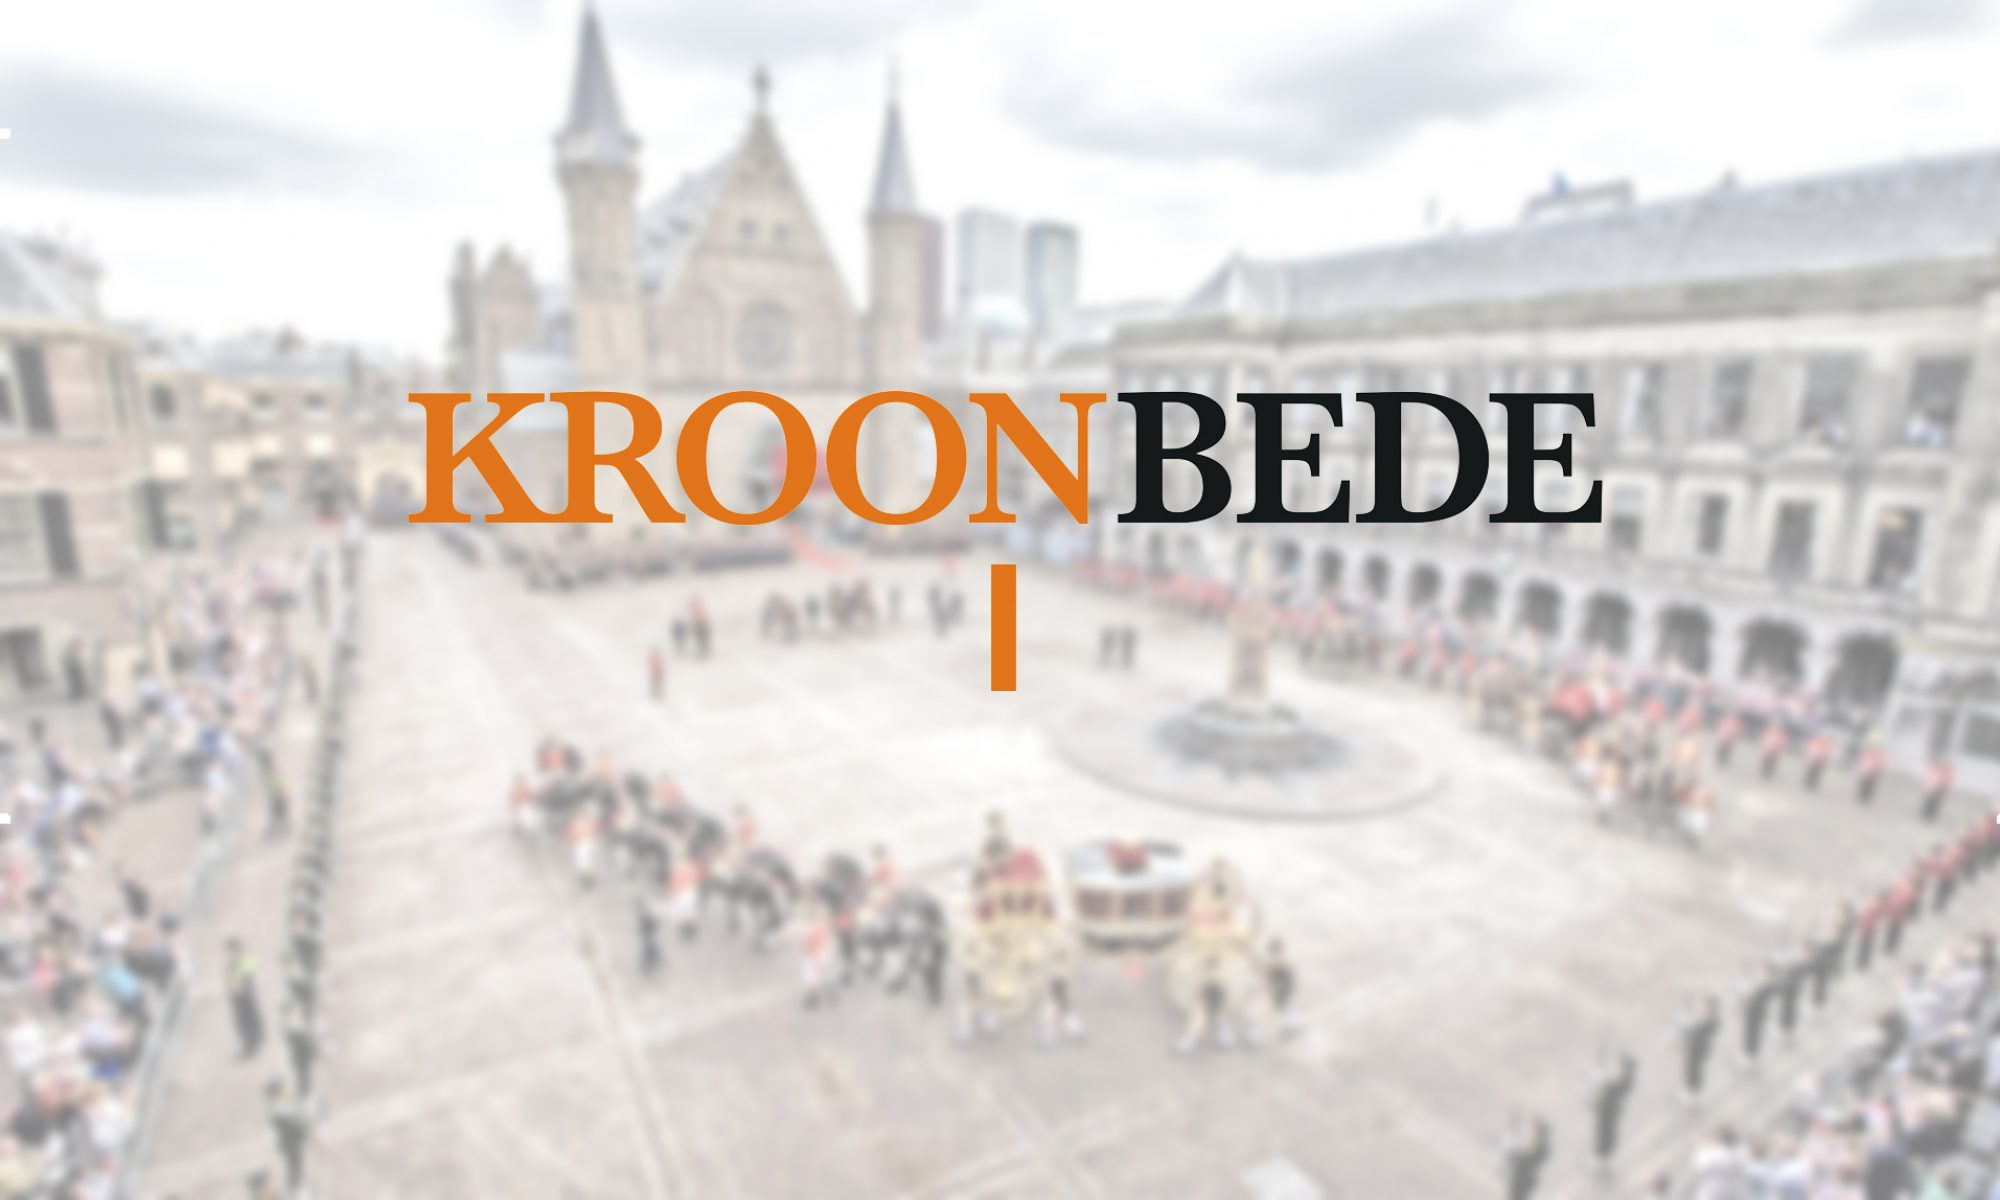 Kroonbede: 11 en 18 september 2018